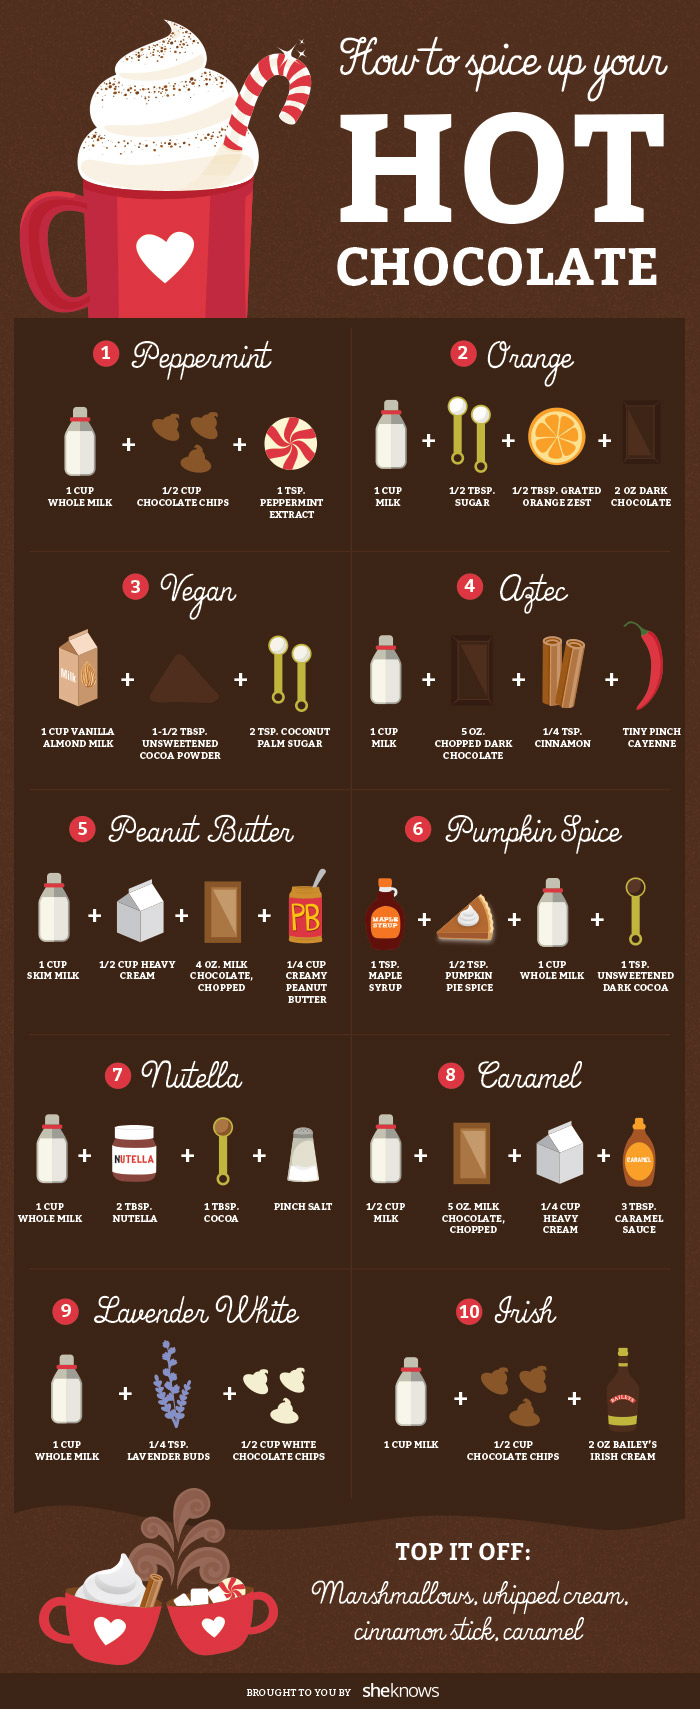 http://www.sheknows.com/food-and-recipes/articles/1054517/delicious-hot-chocolate-recipes-infographic